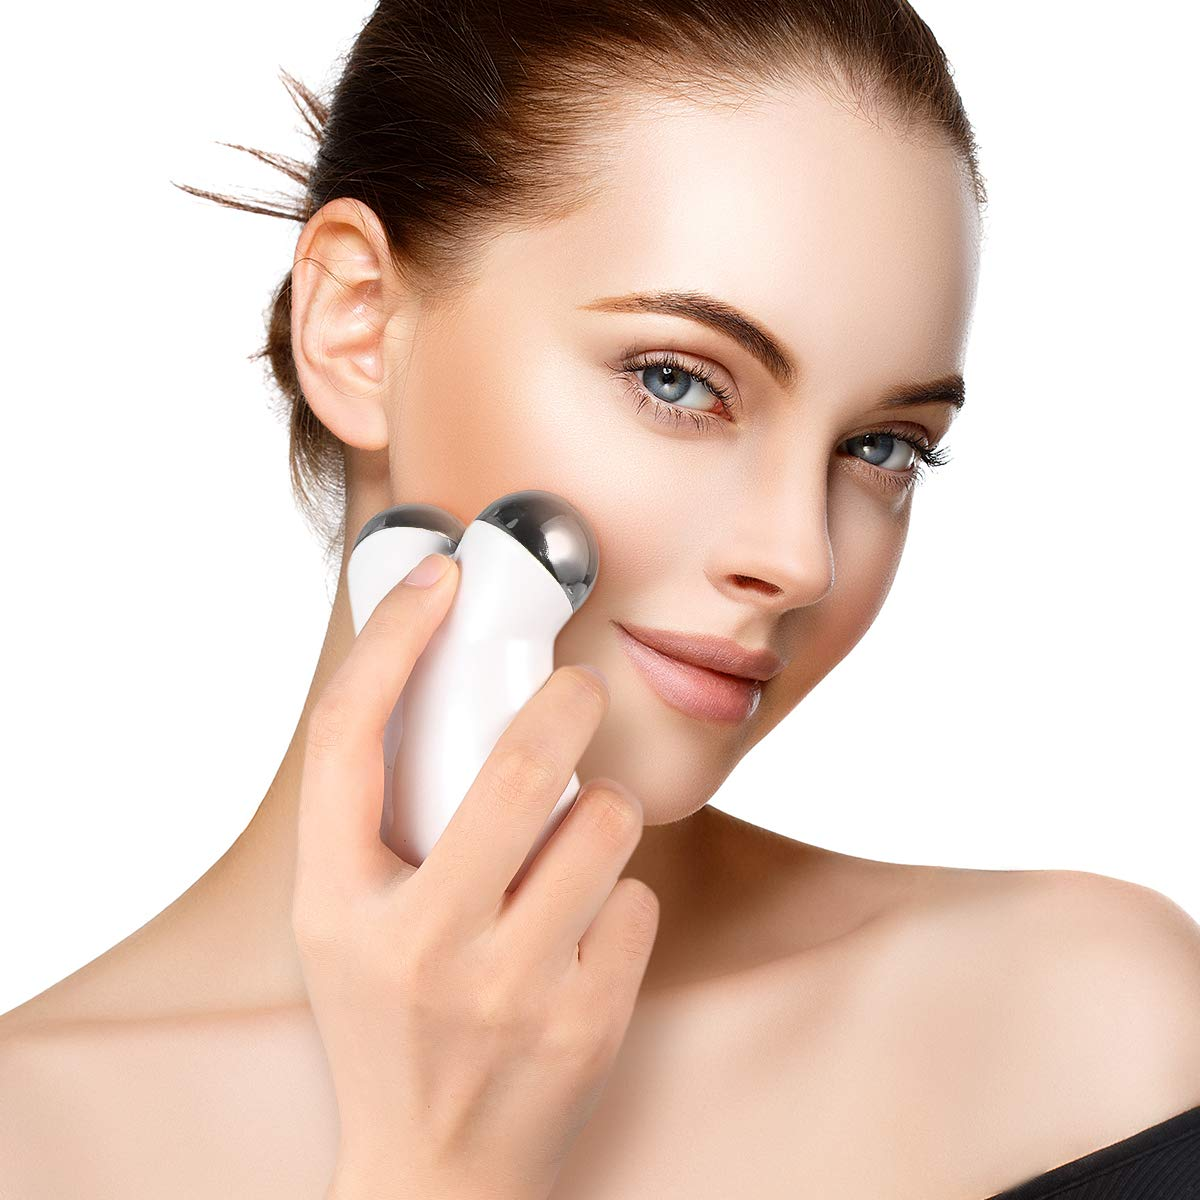 Frcolor Mini Face Massager Microcurrent Facial Toning Device for Reducing Wrinkles and Firming Skin (White): Beauty